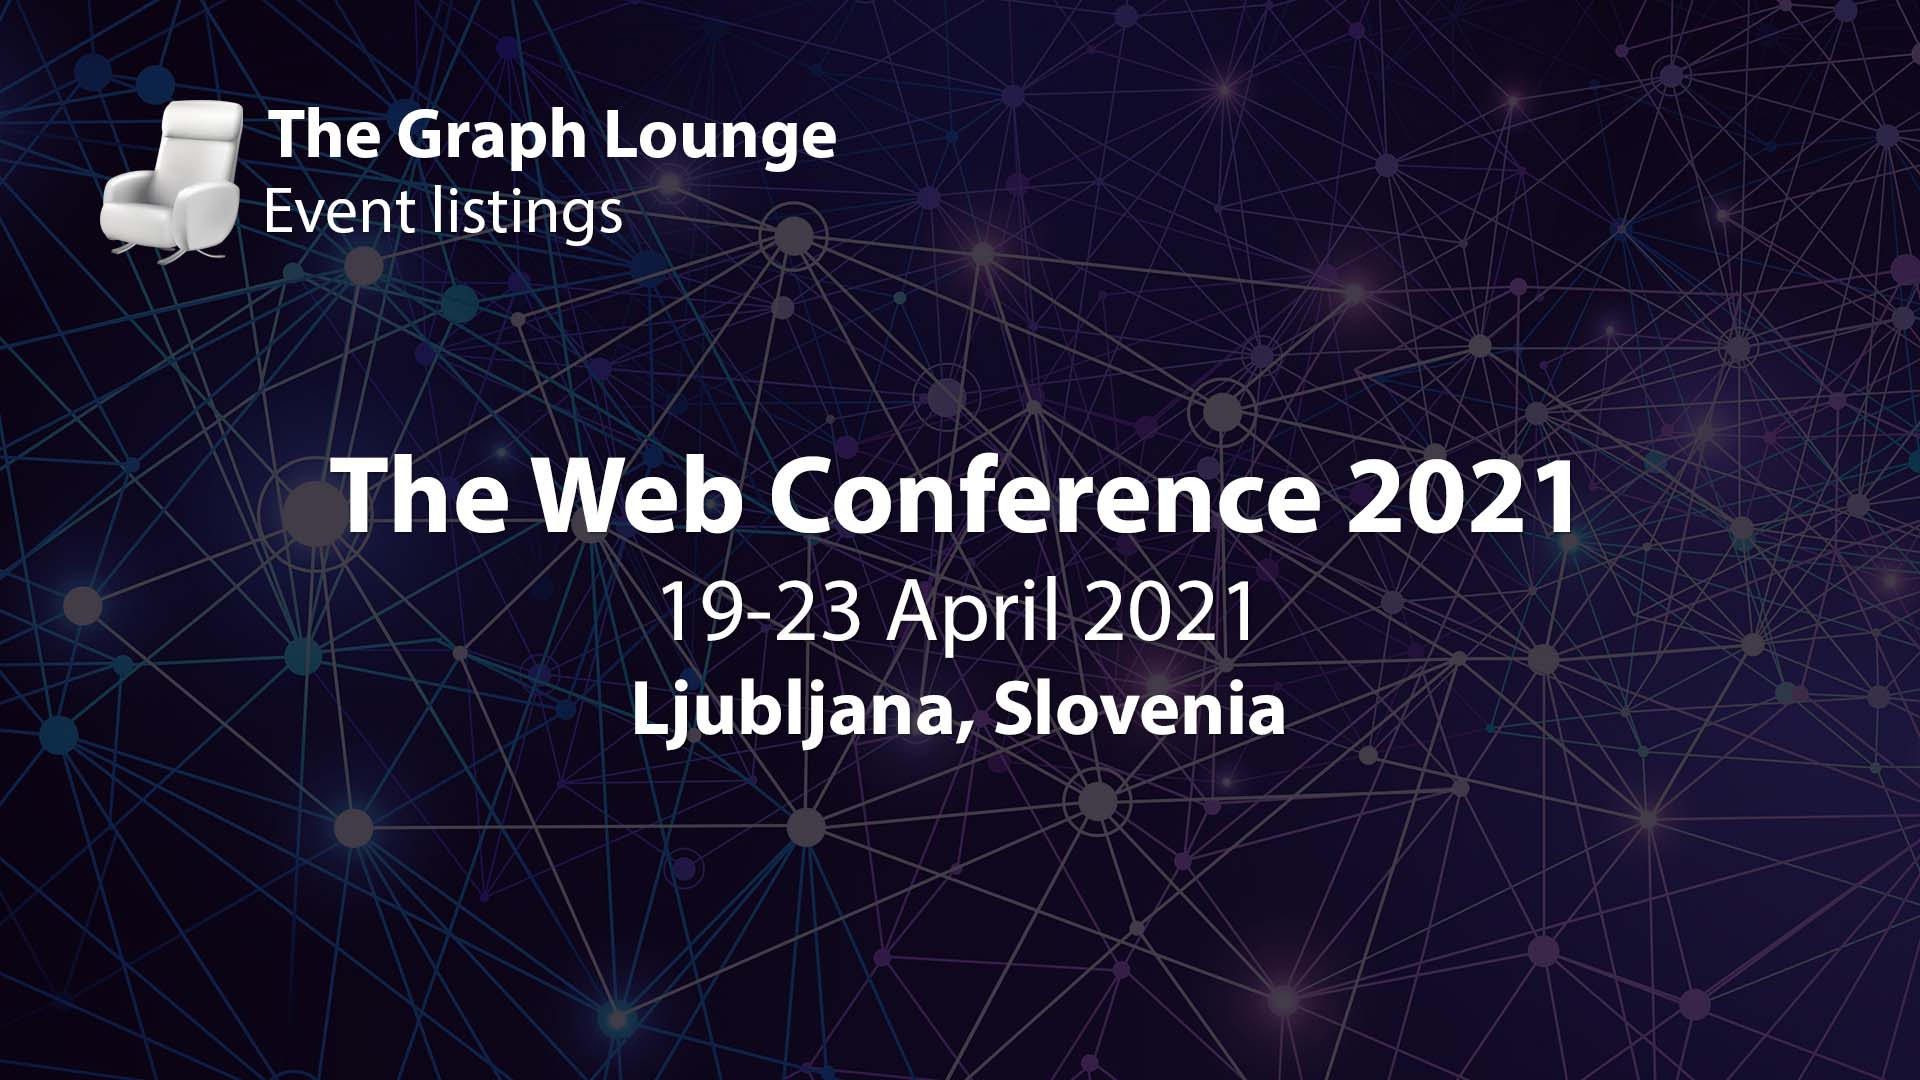 The Web Conference 2021 (WWW Conference 2021)